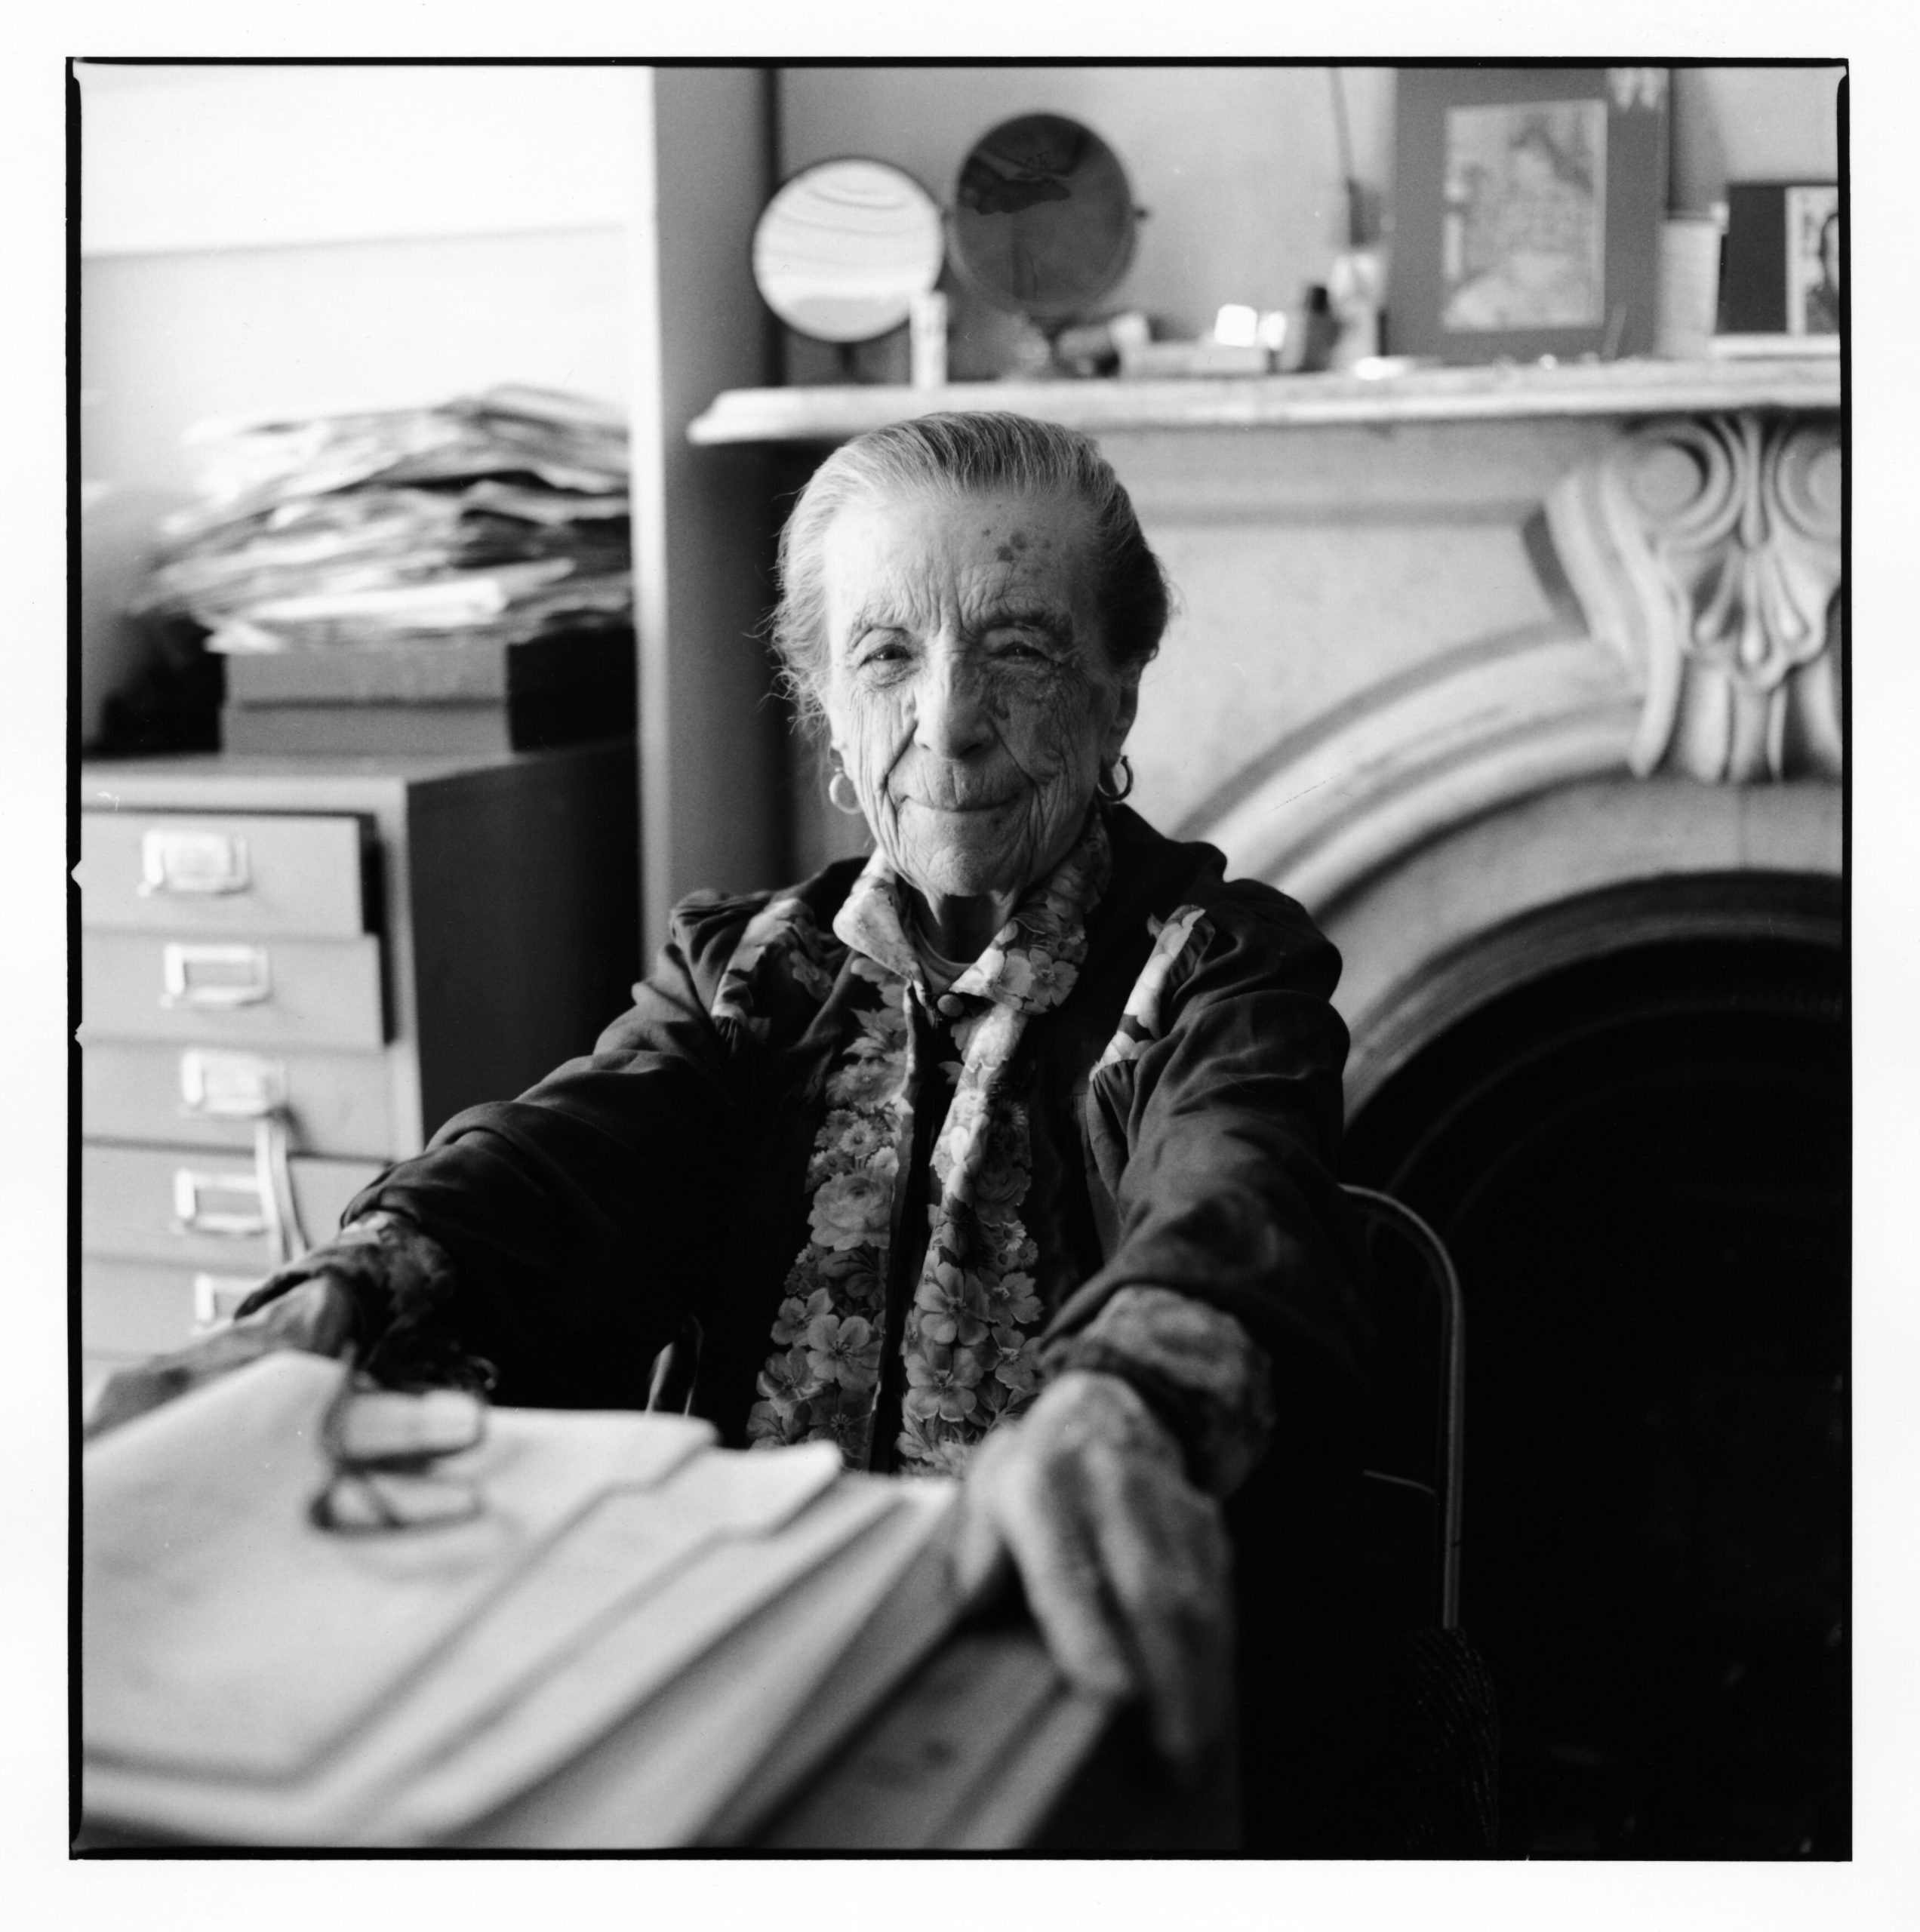 BOURGEOIS LOUISE-hires  Louise Bourgeois in her home on 20th Street in NYC in 2000.  Photo: © Jean-François Jaussaud